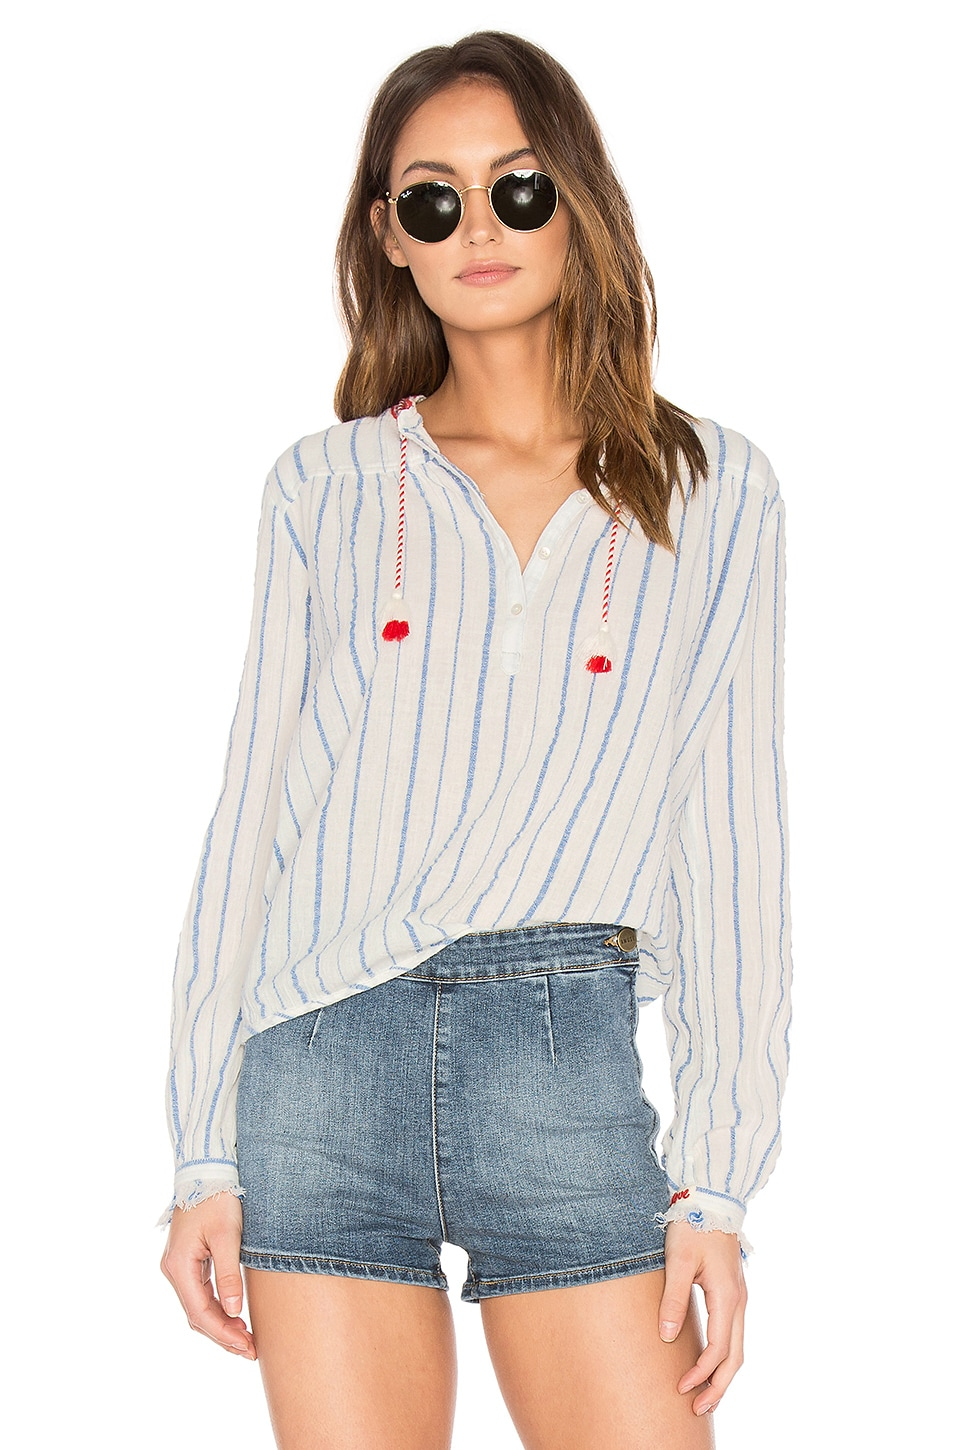 Embroidered Woven Top by Maison Scotch